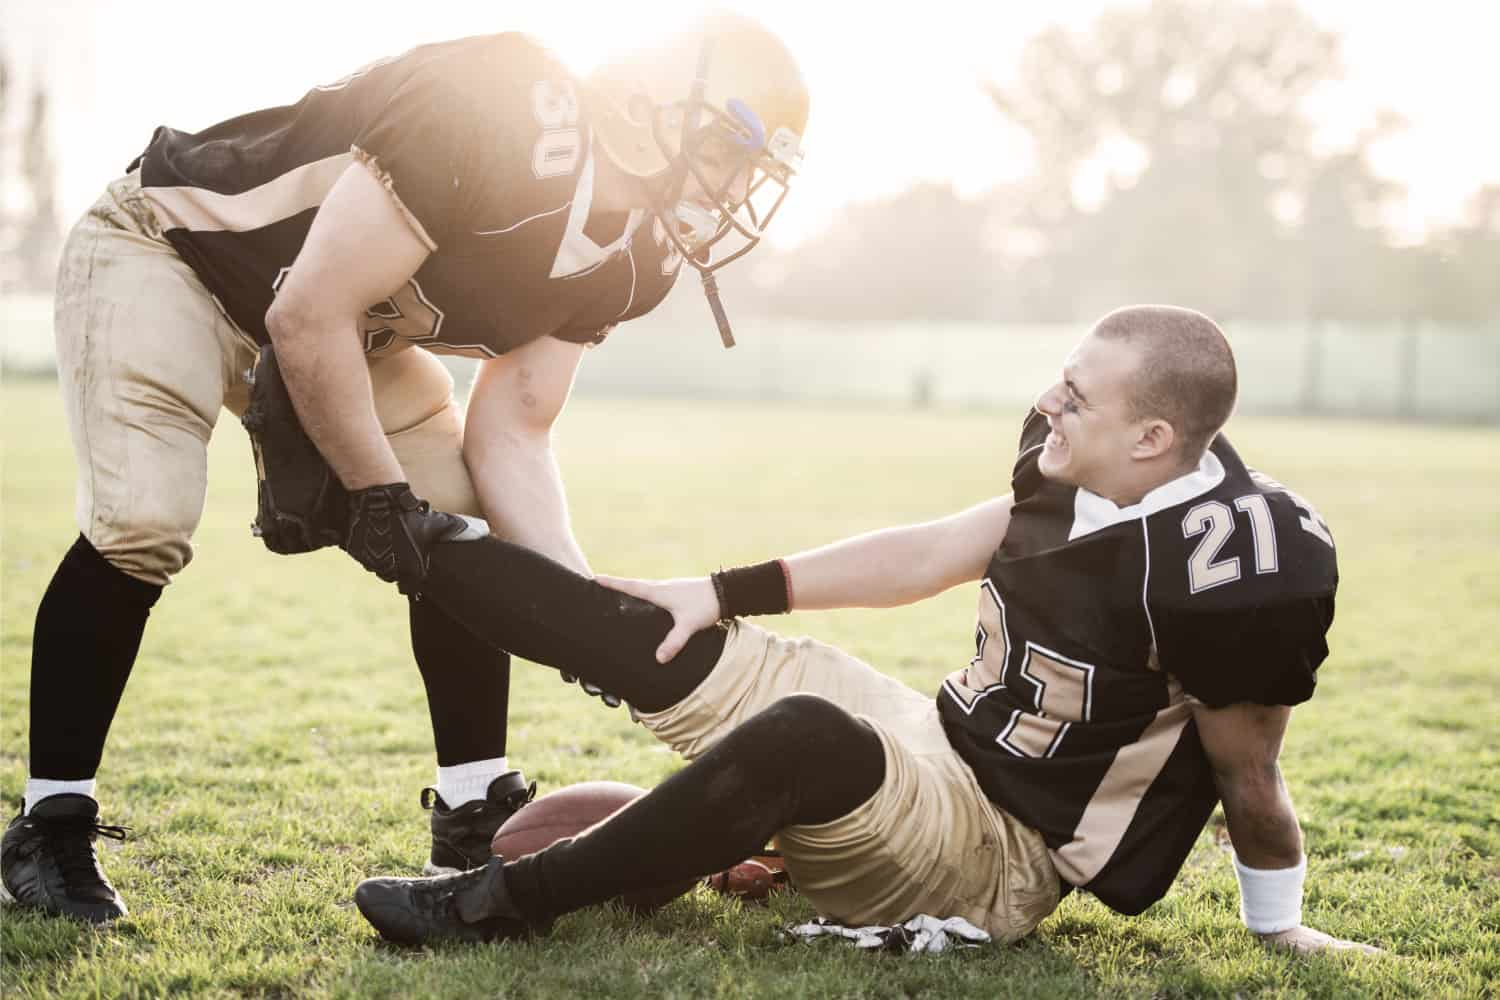 Injured American football player sitting on a grass while his friend is helping him